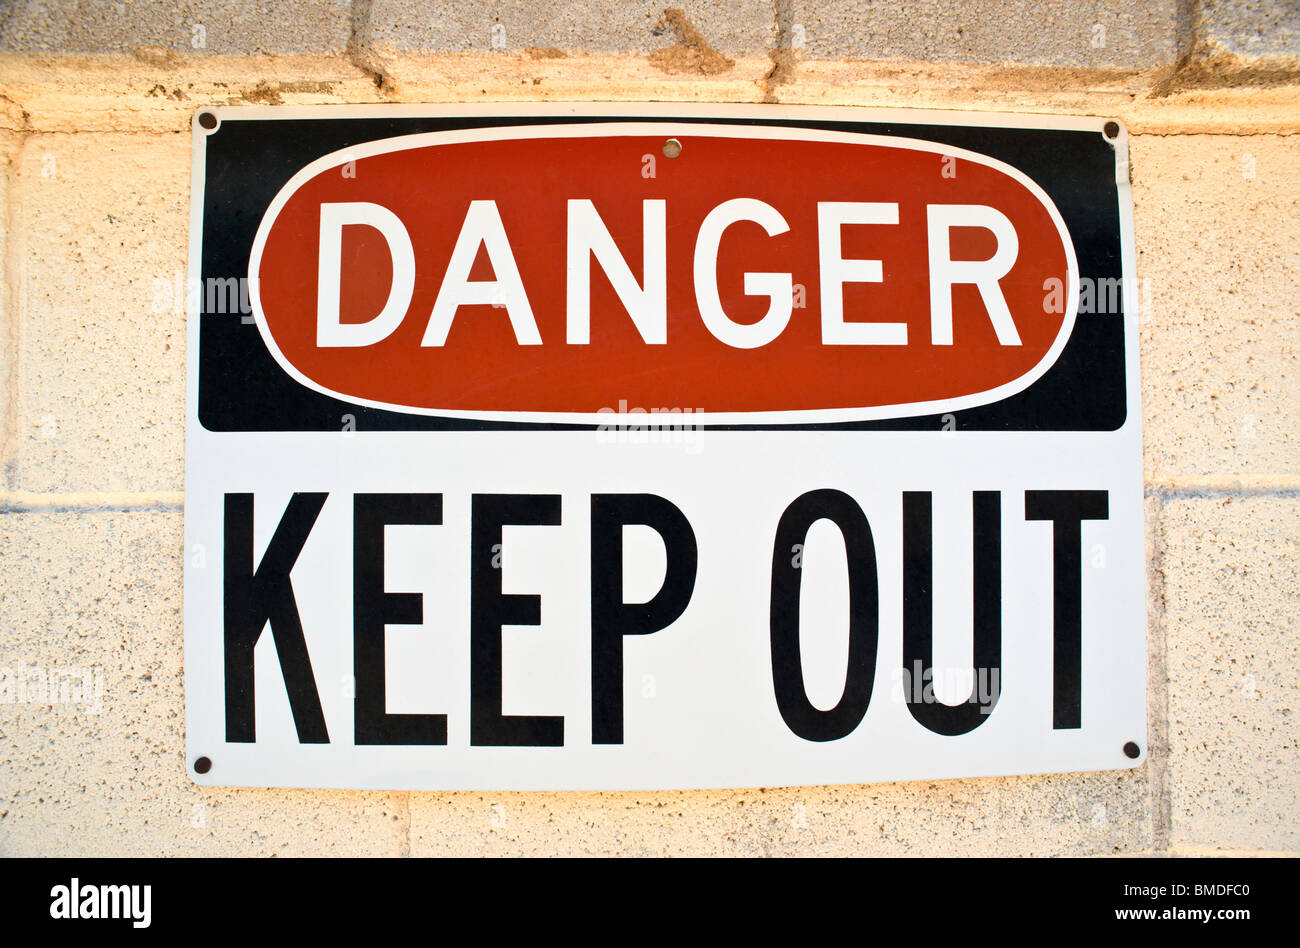 A warning sign like this should always be heeded, in Encino, New Mexico. - Stock Image